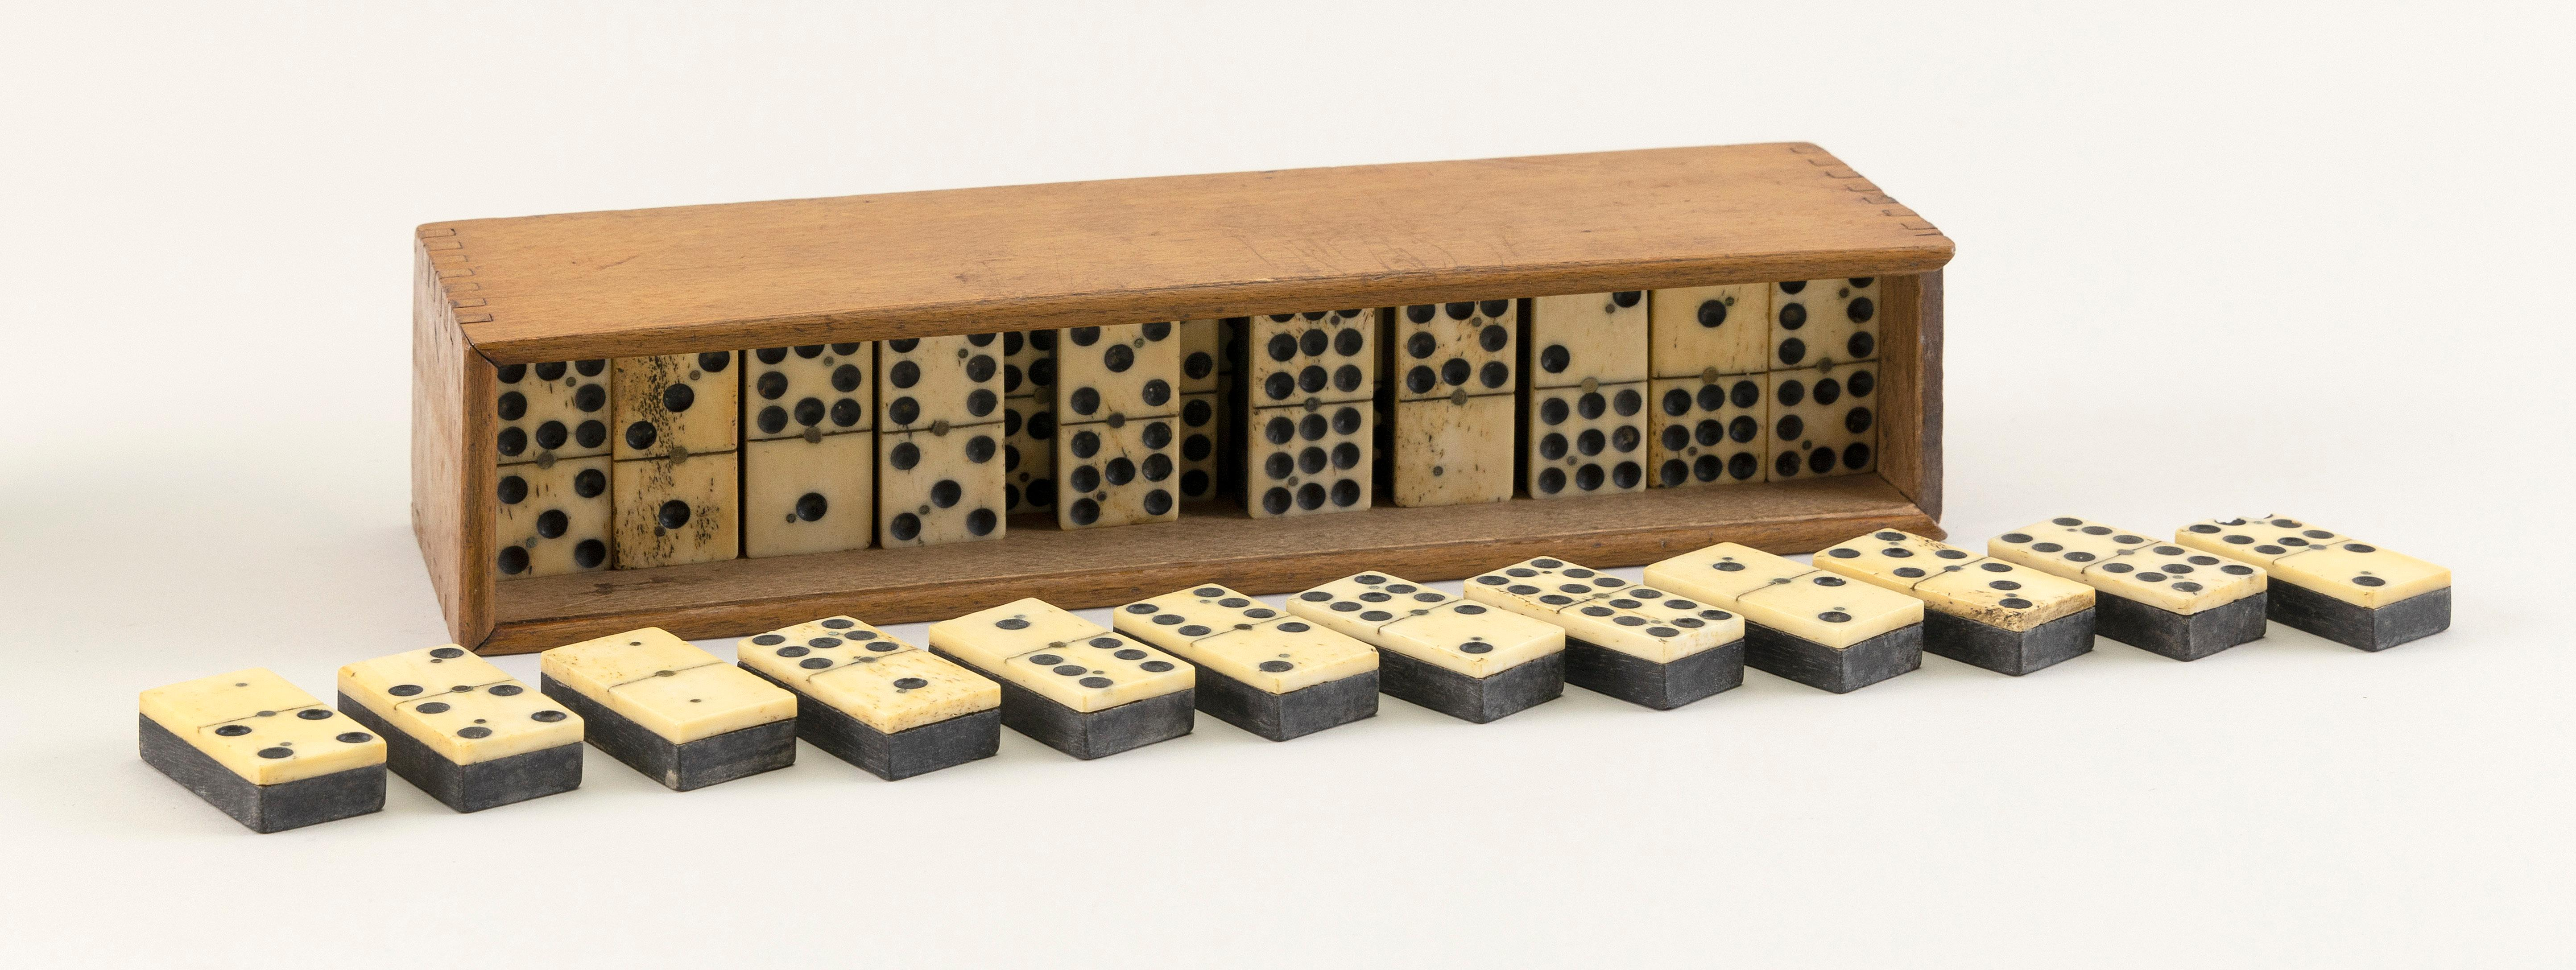 """BOXED SET OF FIFTY-FIVE BONE AND EBONY DOMINOES Late 19th/Early 20th Century Box height 3"""". Length 10.75"""". Width 2.25""""."""